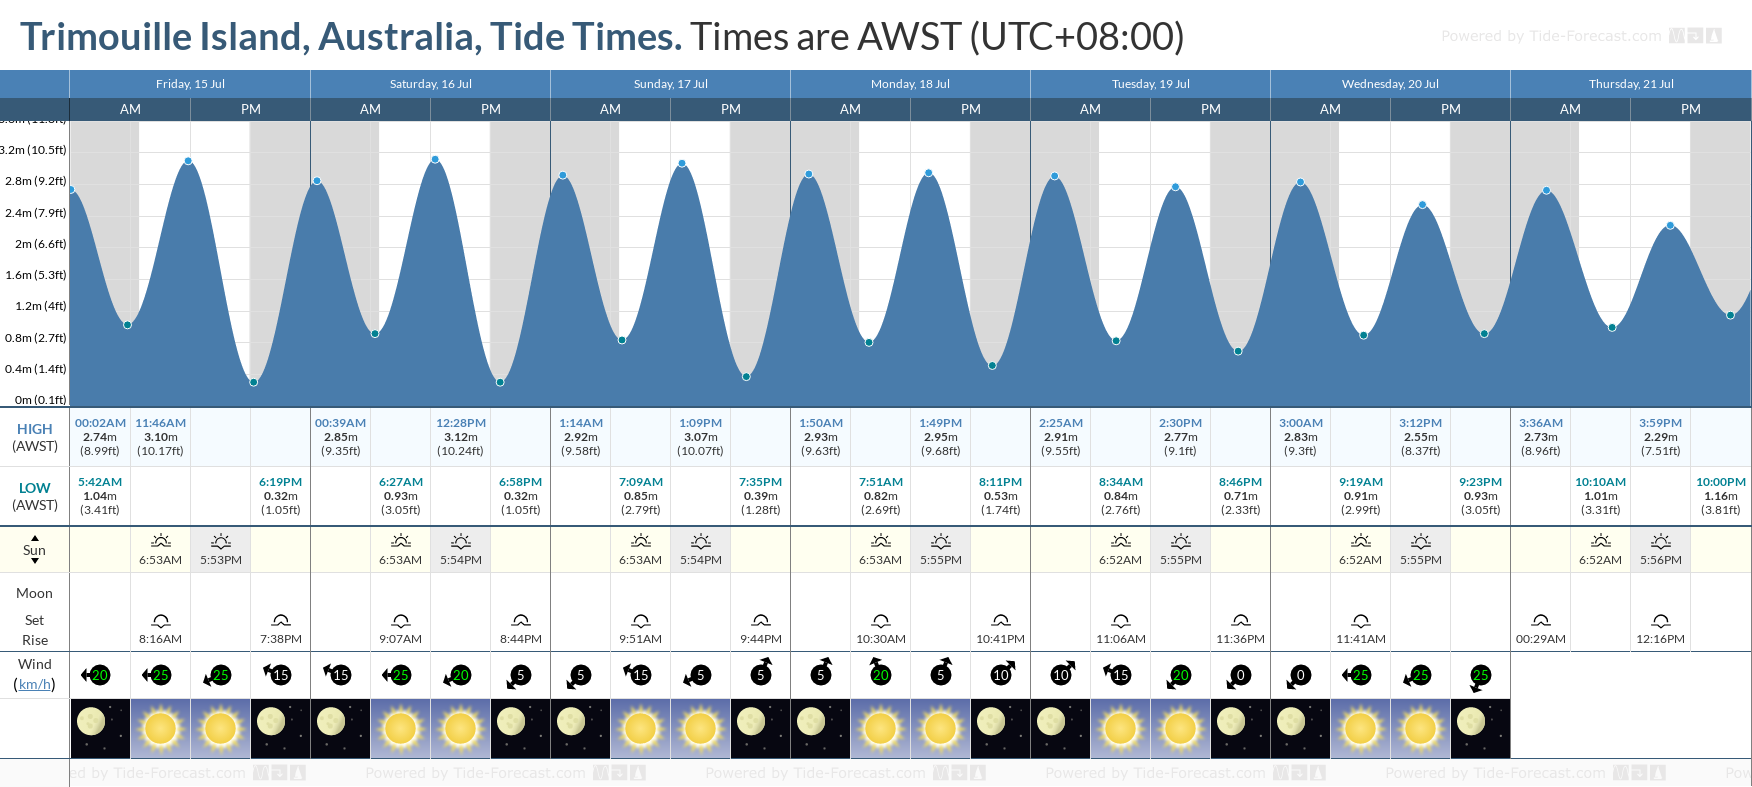 Trimouille Island, Australia Tide Chart including high and low tide tide times for the next 7 days